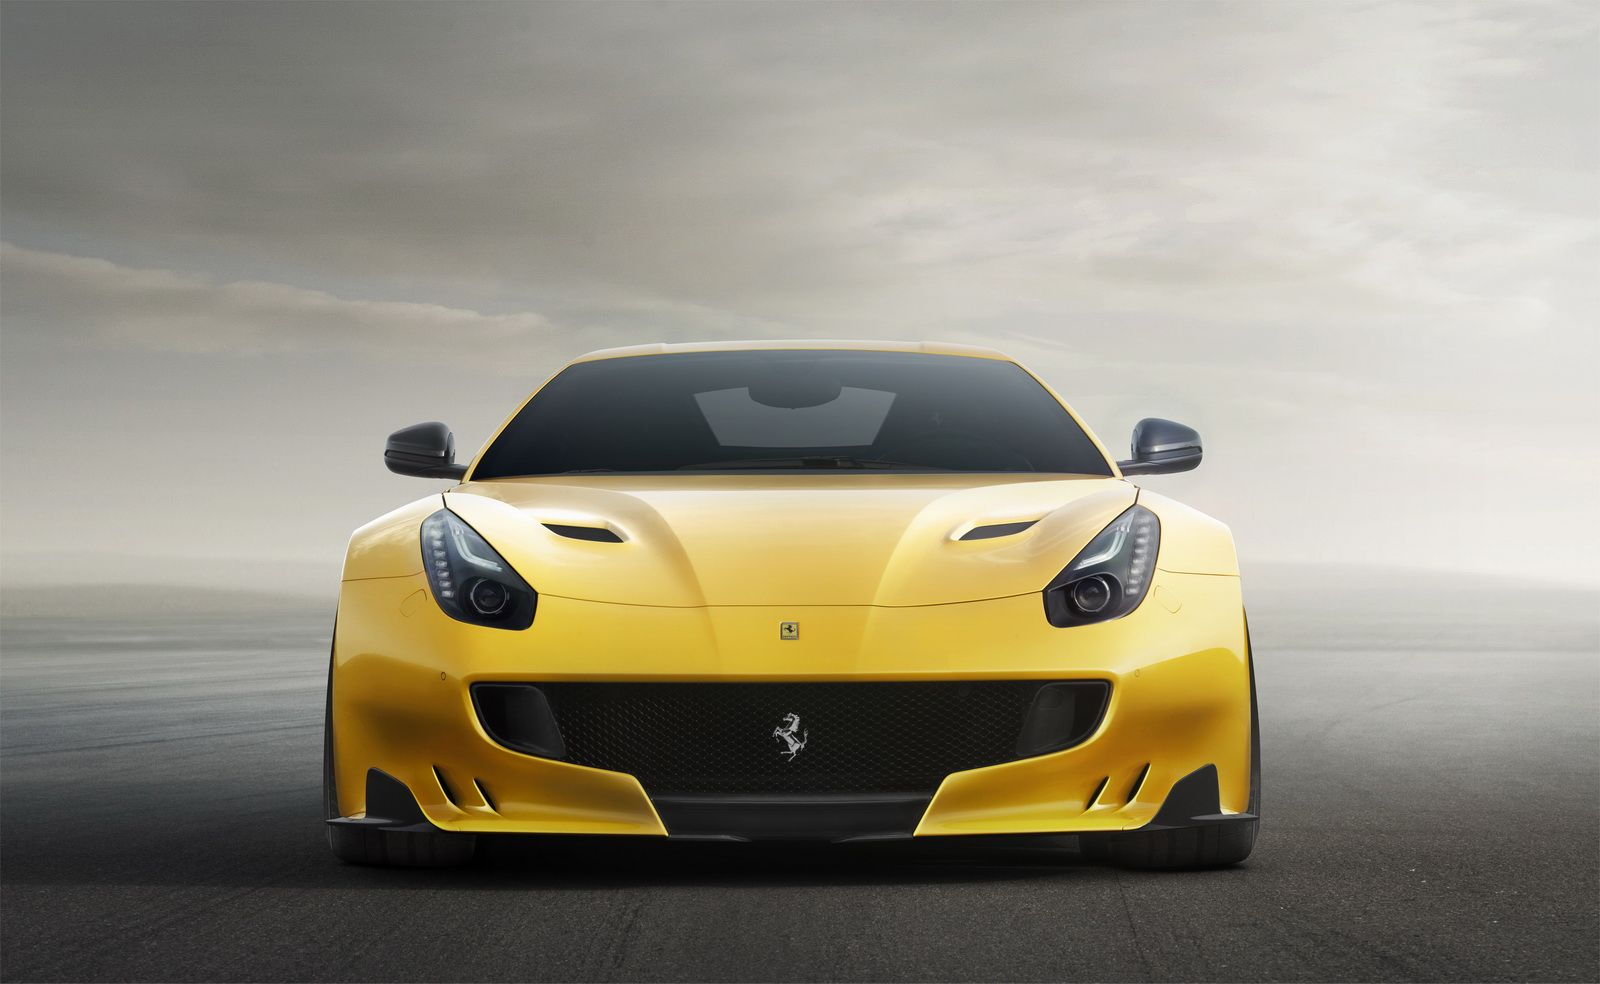 Ferrari Unveils Hardcore F12tdf Limited Edition Model With 780PS